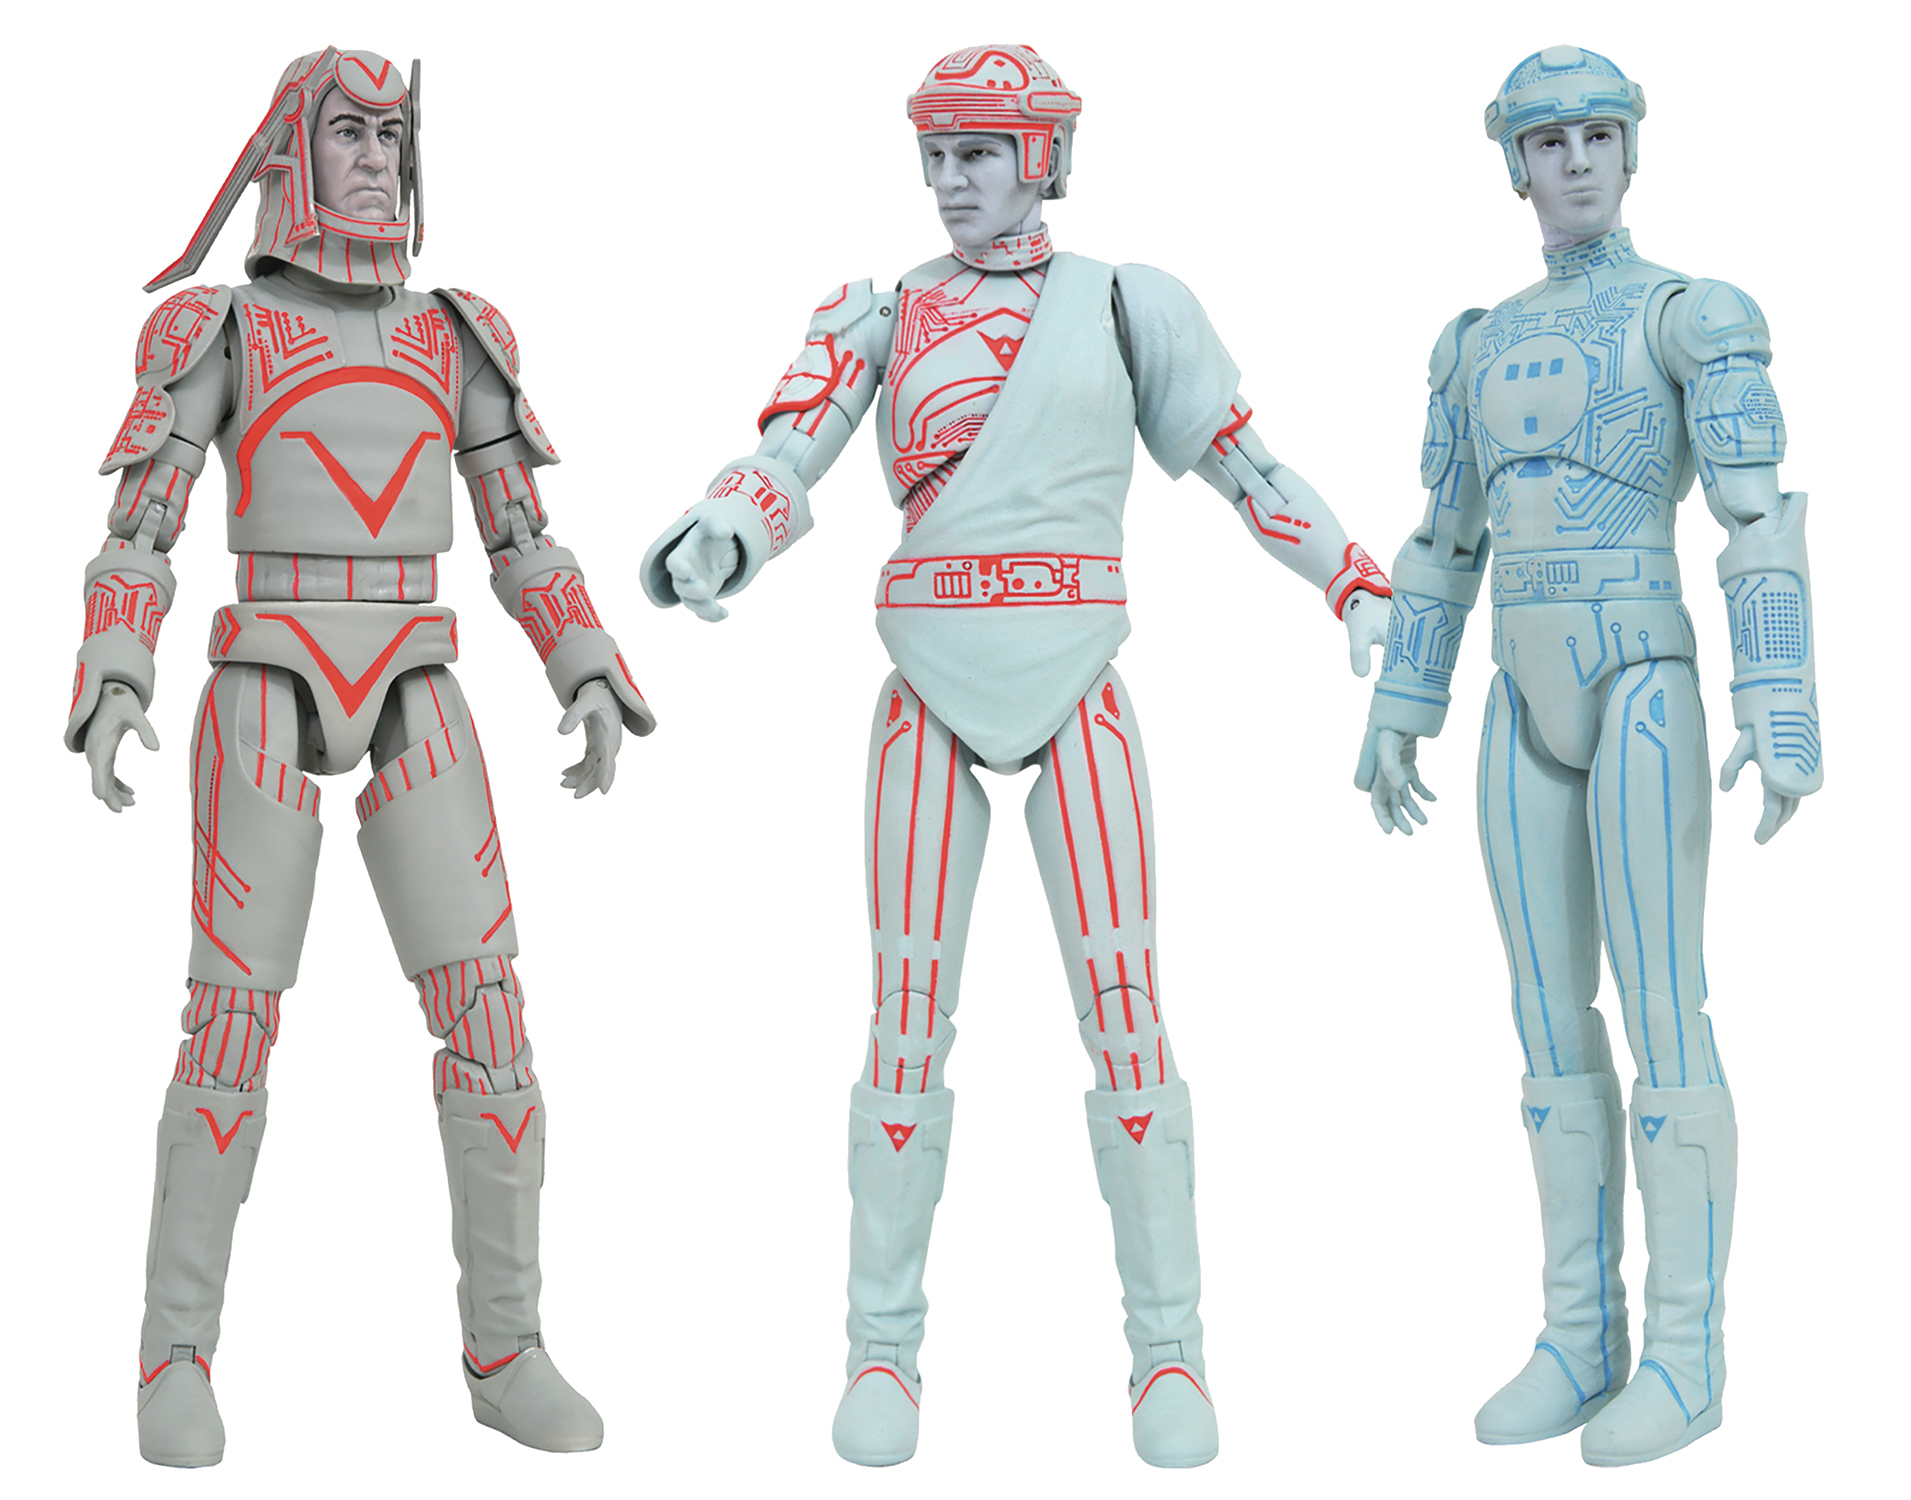 TRON SELECT SERIES 1 FIGURE ASST